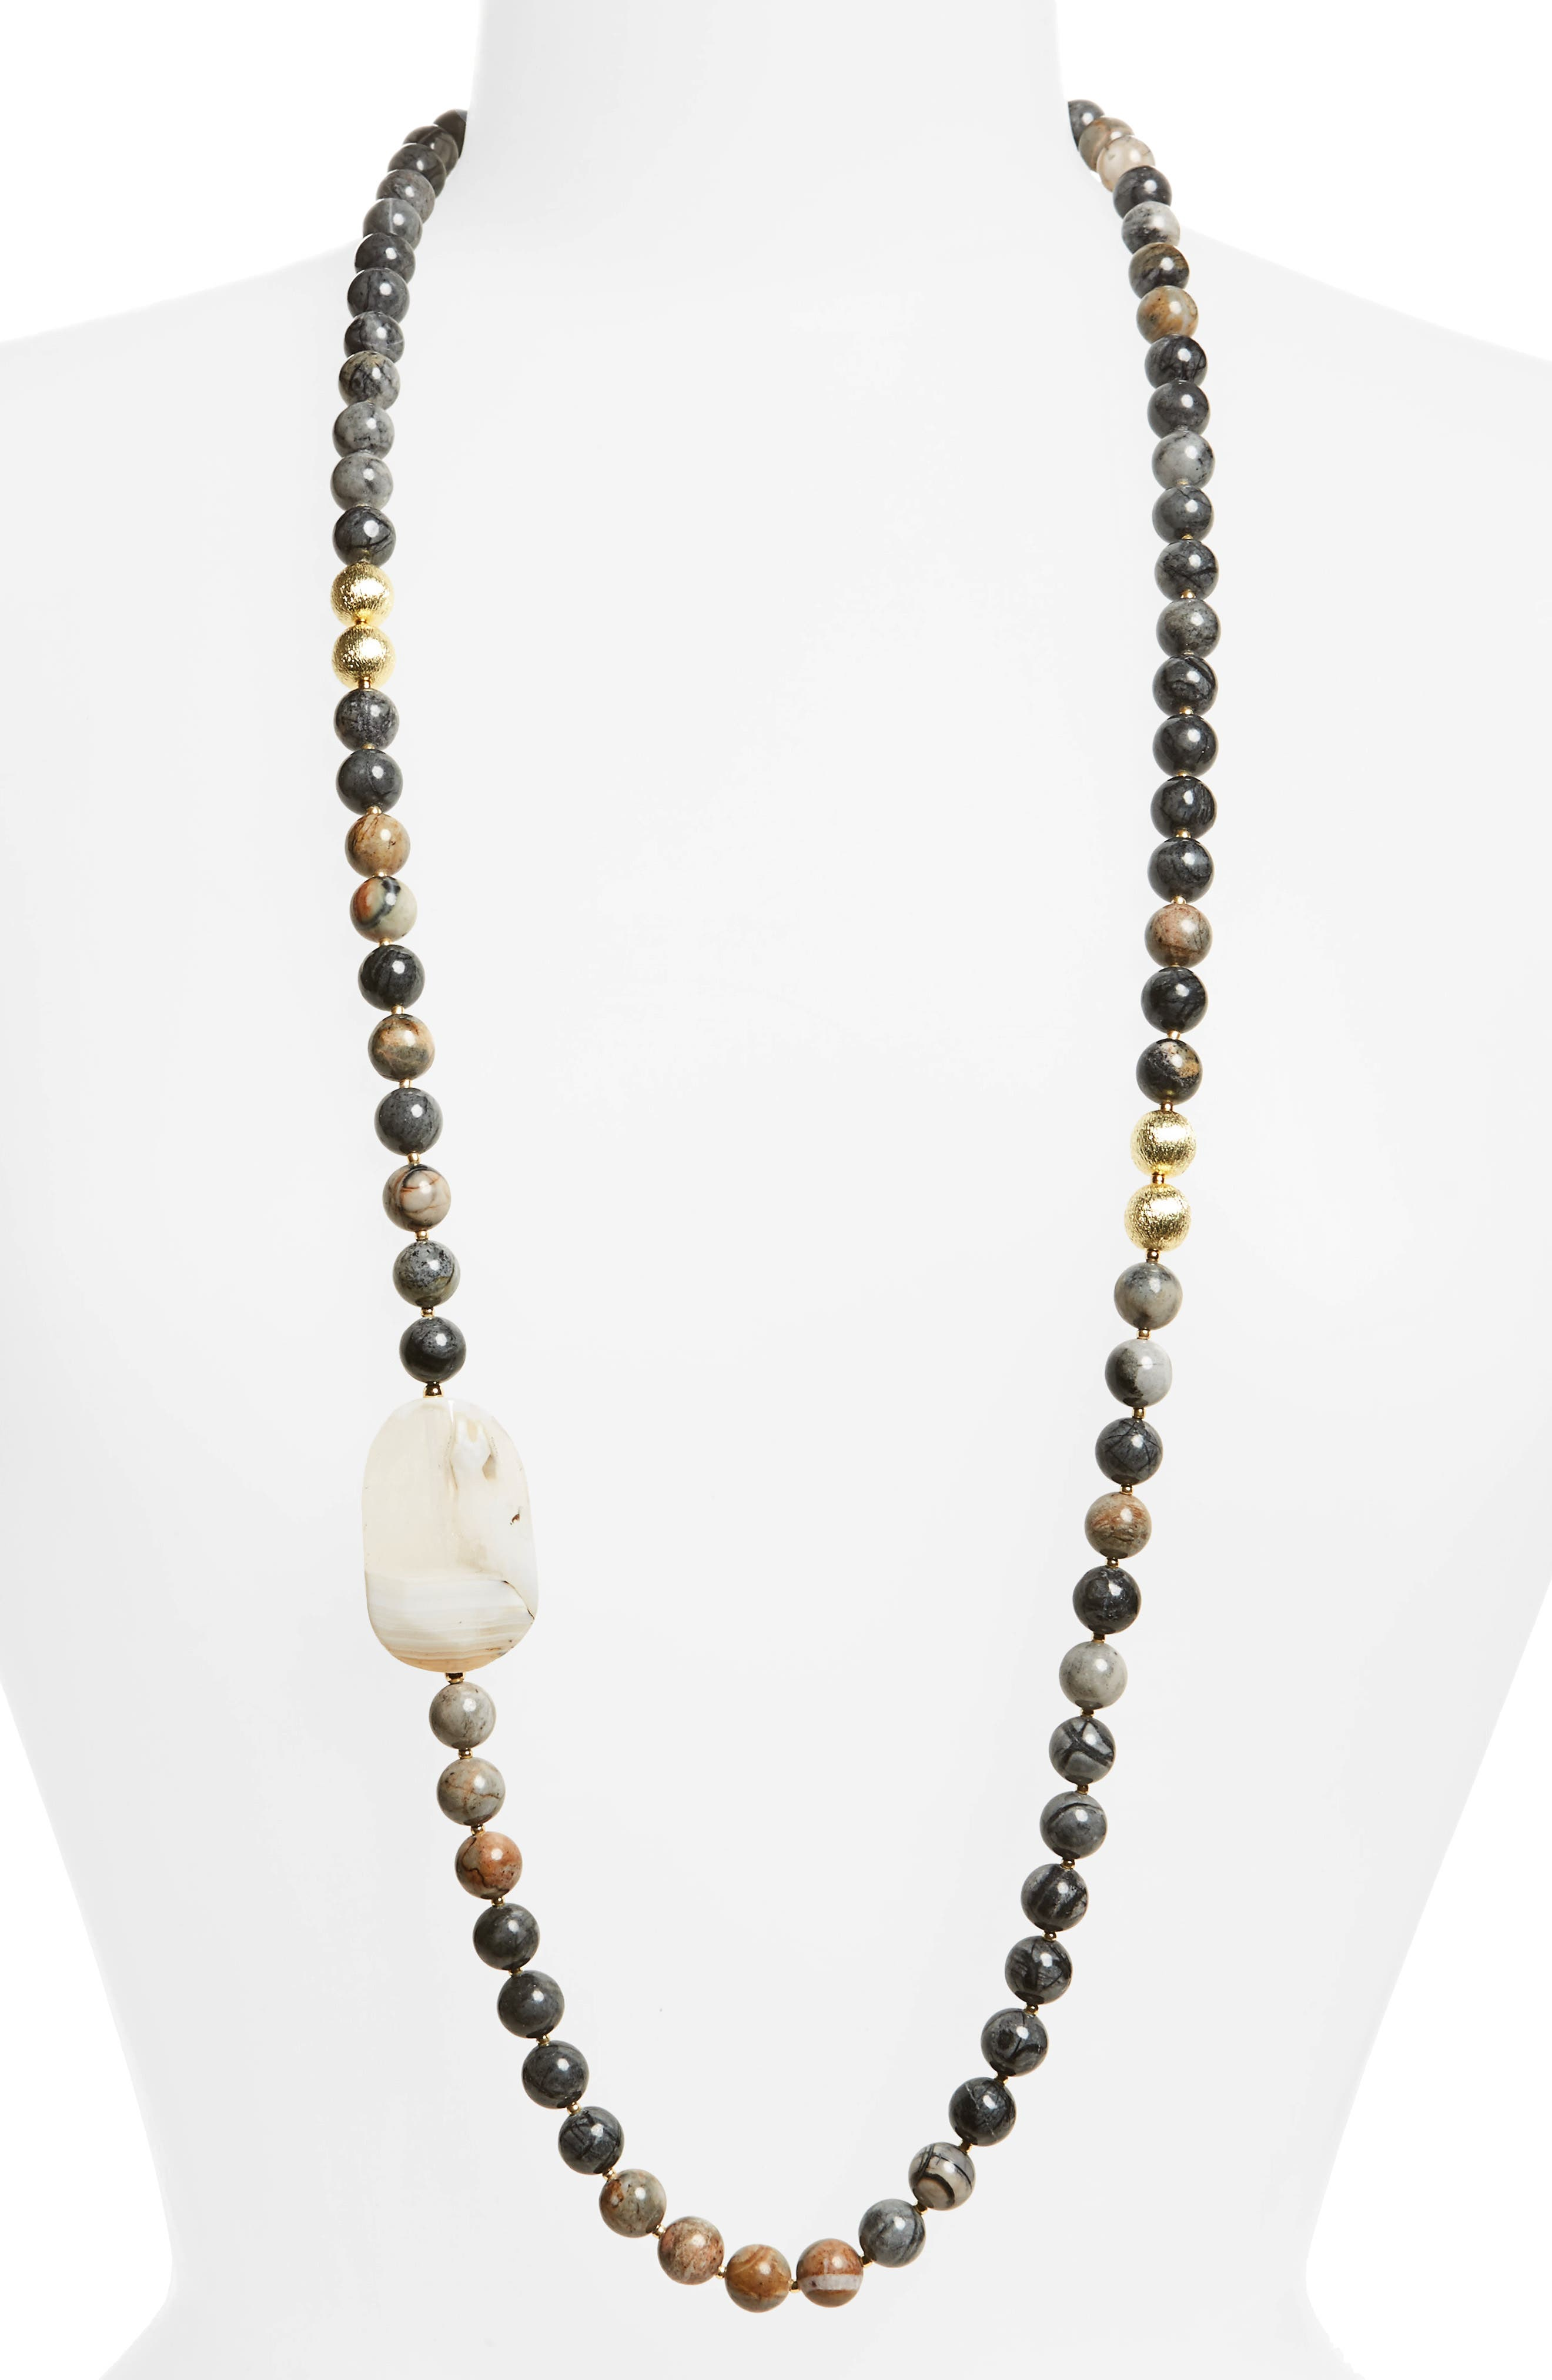 Main Image - Love's Affect Addison Semiprecious Station Necklace